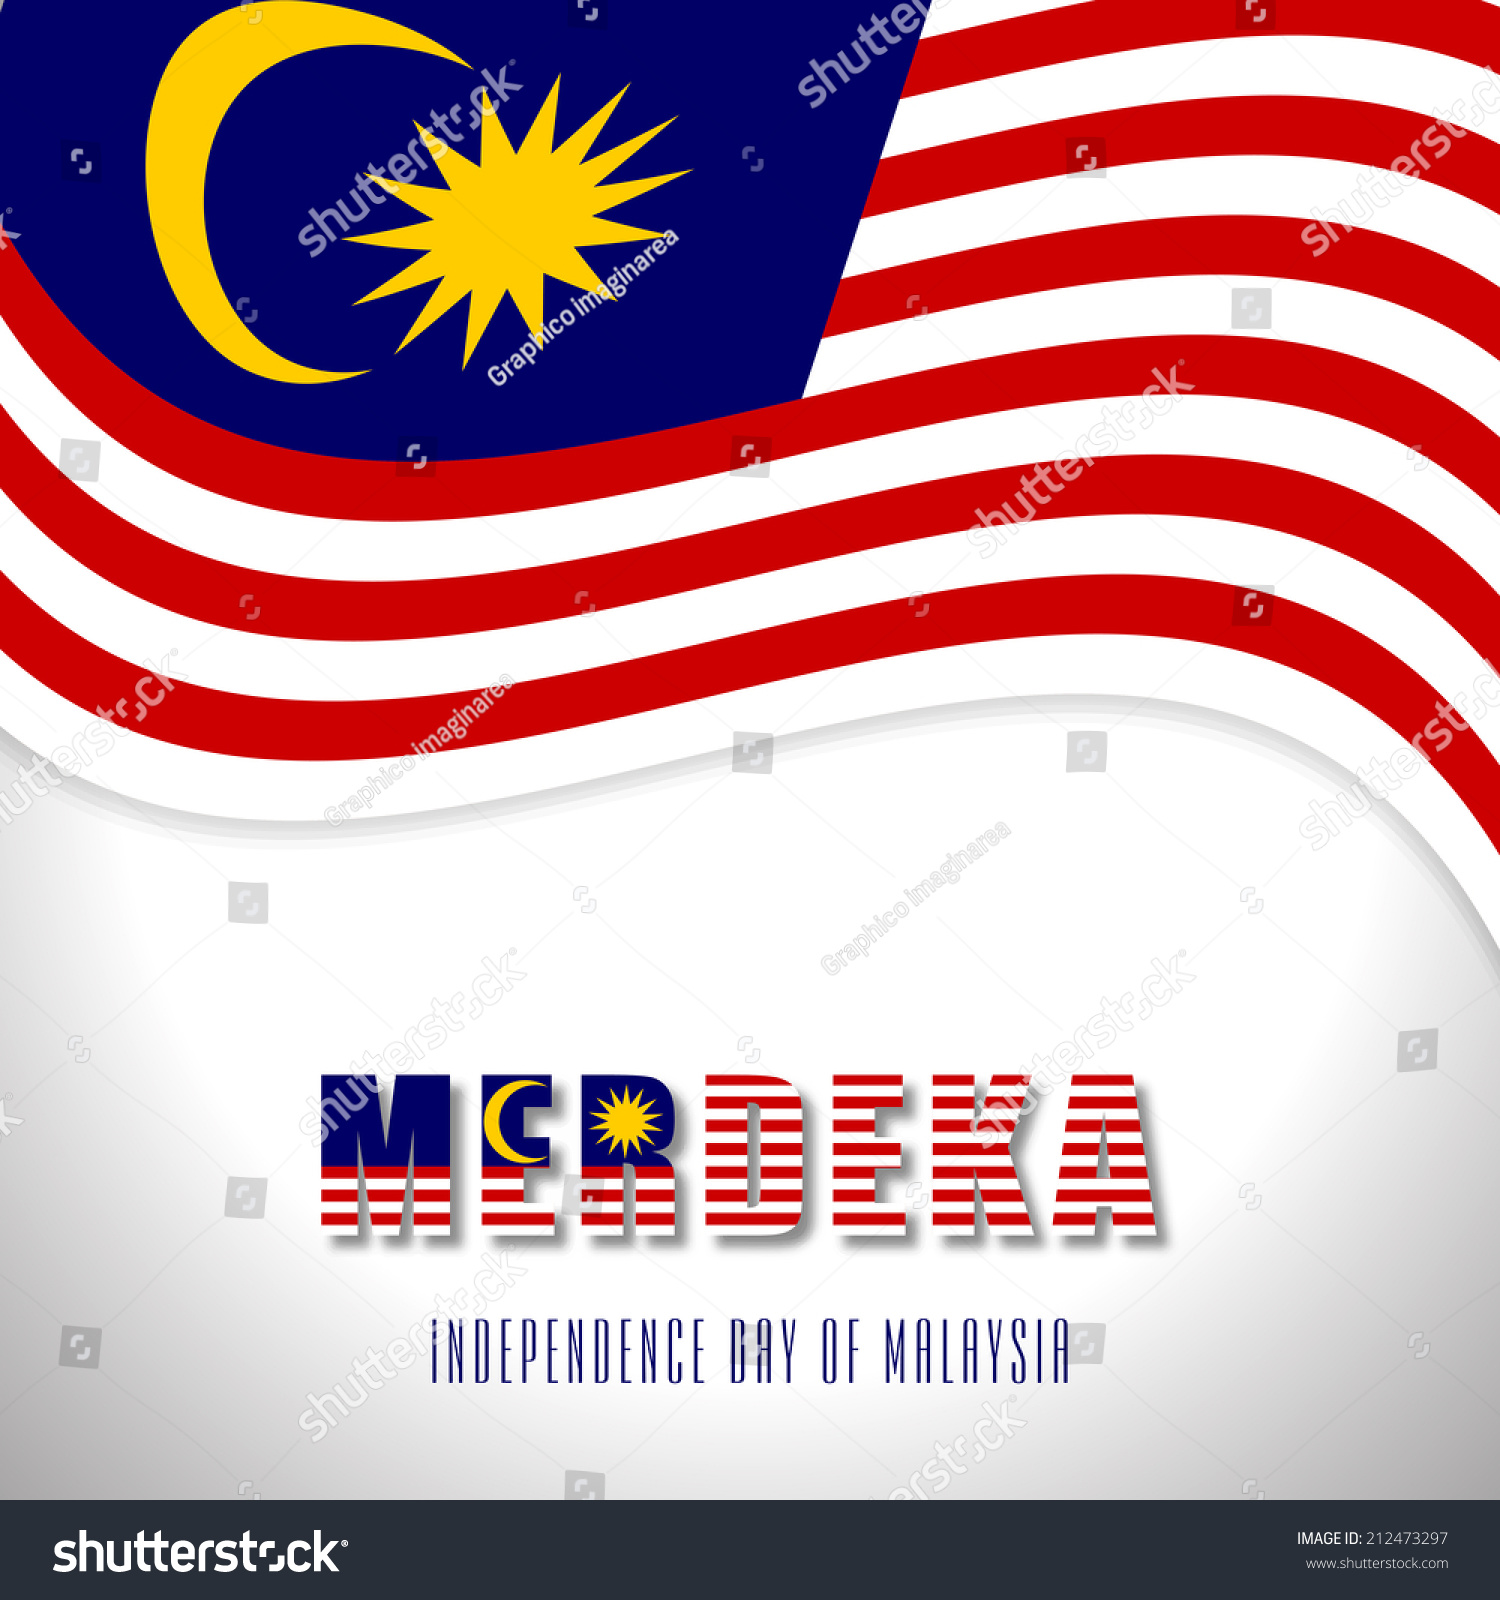 independence for malaysia Malaysia got its independence on august 31, 1957 independence day is a public holiday in malaysia.